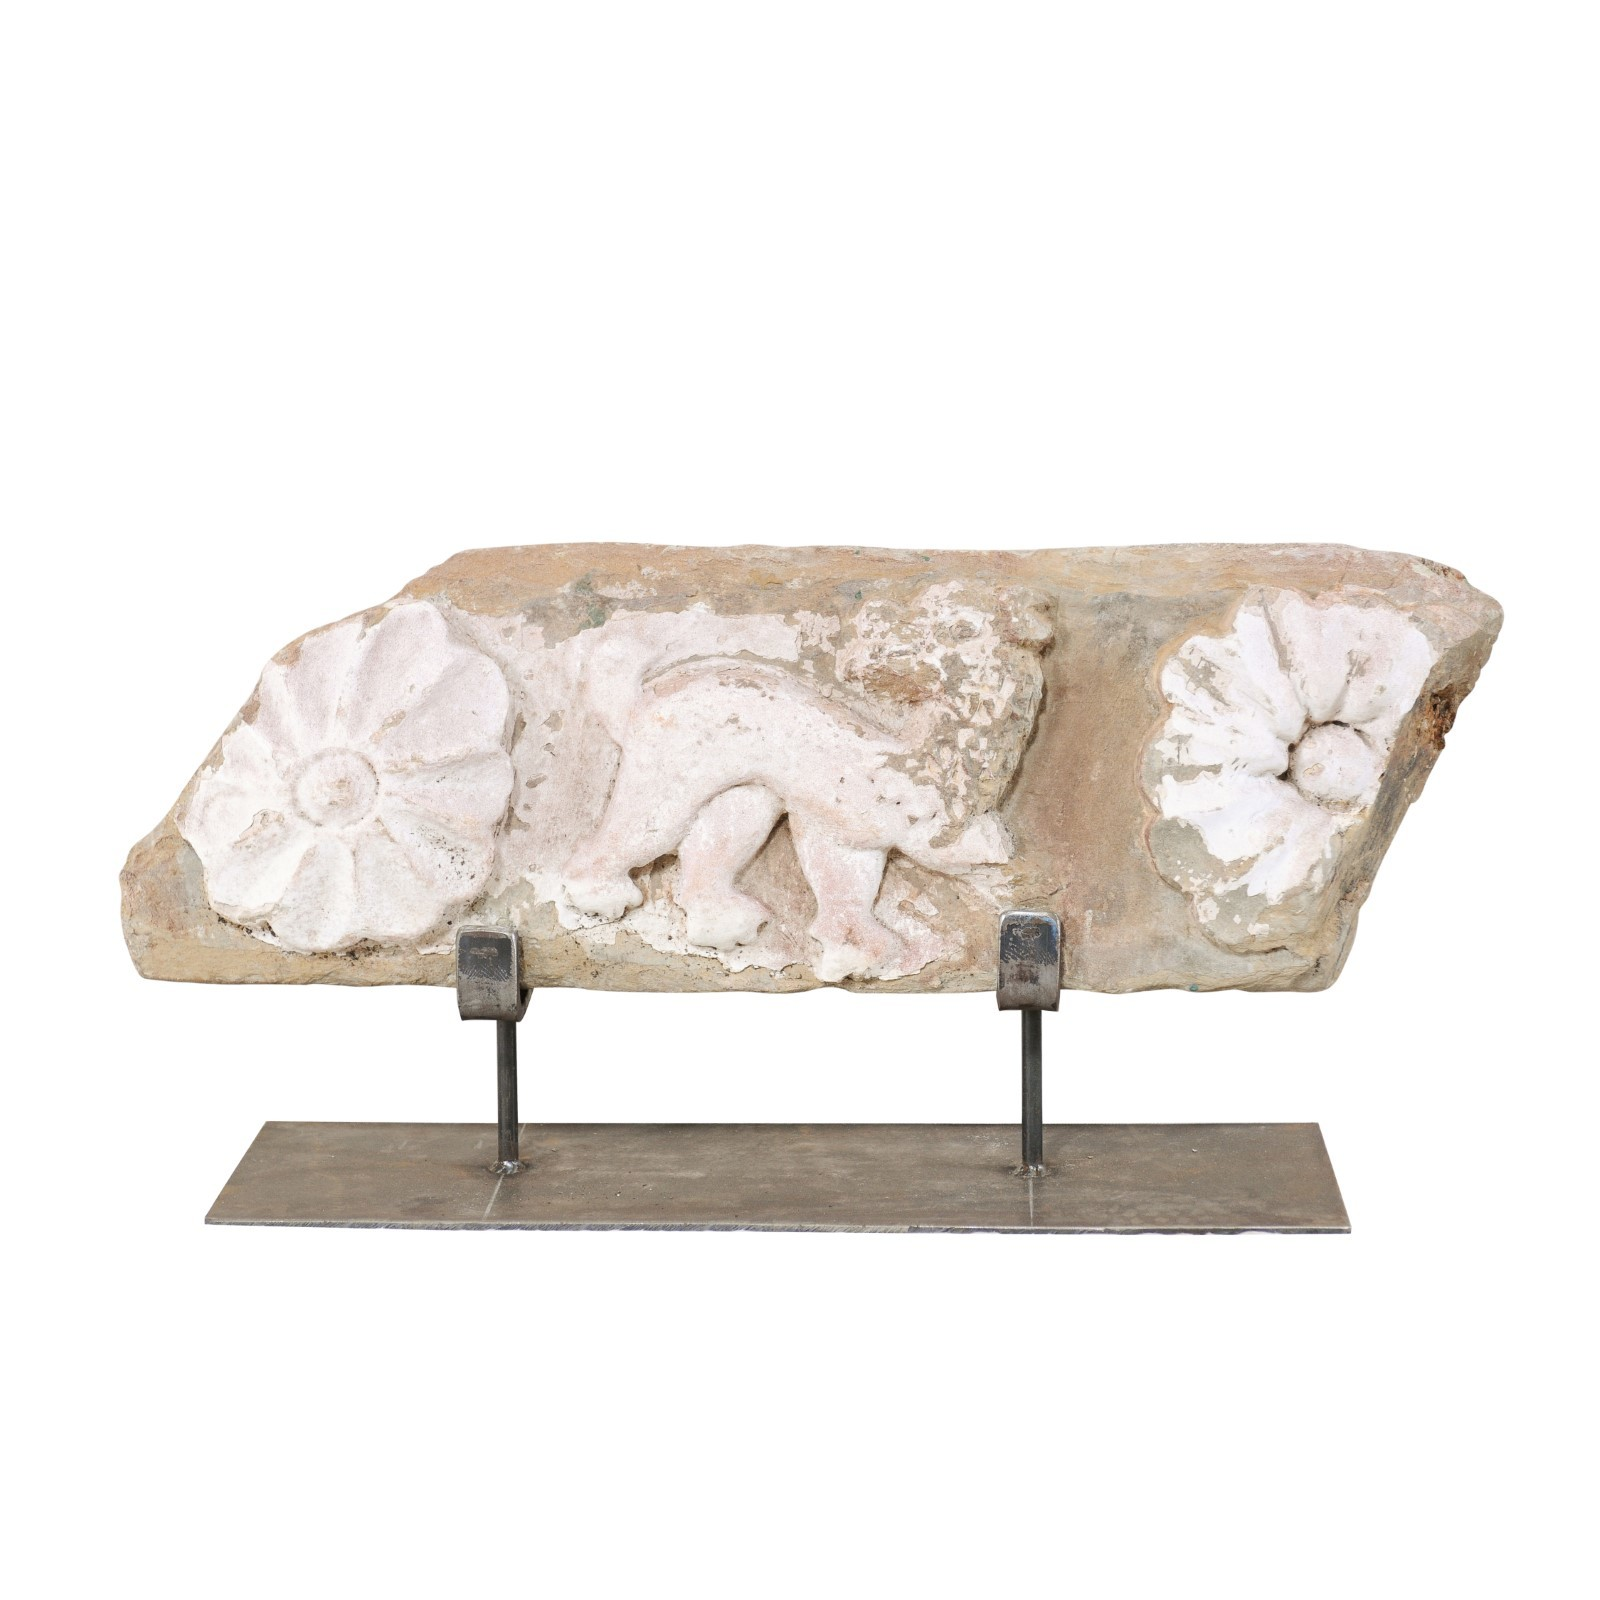 Fabulous Stone Fragment, 18th C. Spain